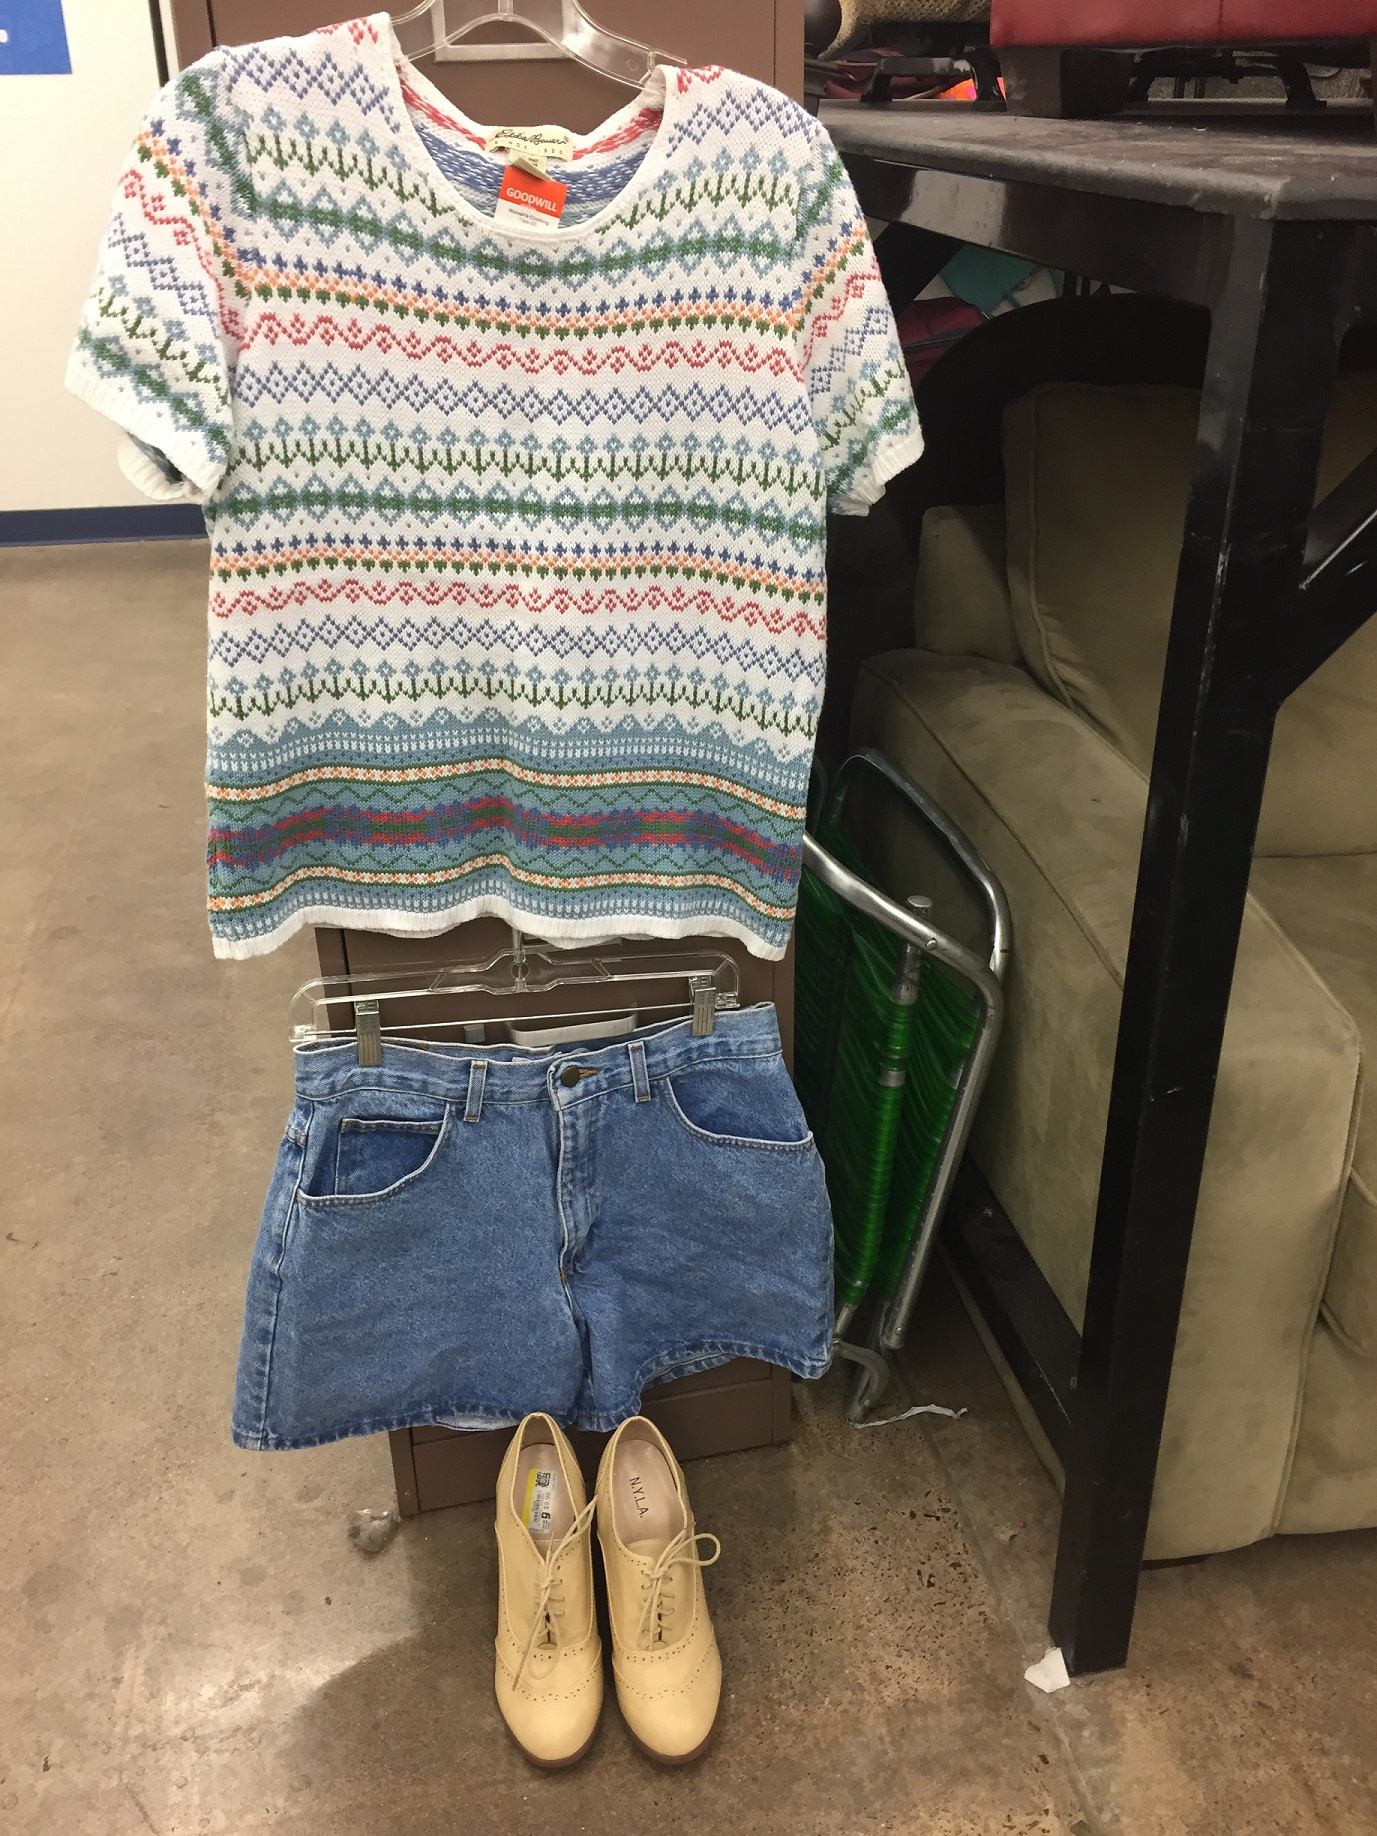 This+outfit+is+my+favorite+out+of+the+eight.+The+knit+shirt+costs+%244.99%2C+the+high-waisted+shorts+cost+%245.99%2C+and+the+shoes+cost+%249.99%2C+bringing+the+whole+outfit+to+%2420.97.